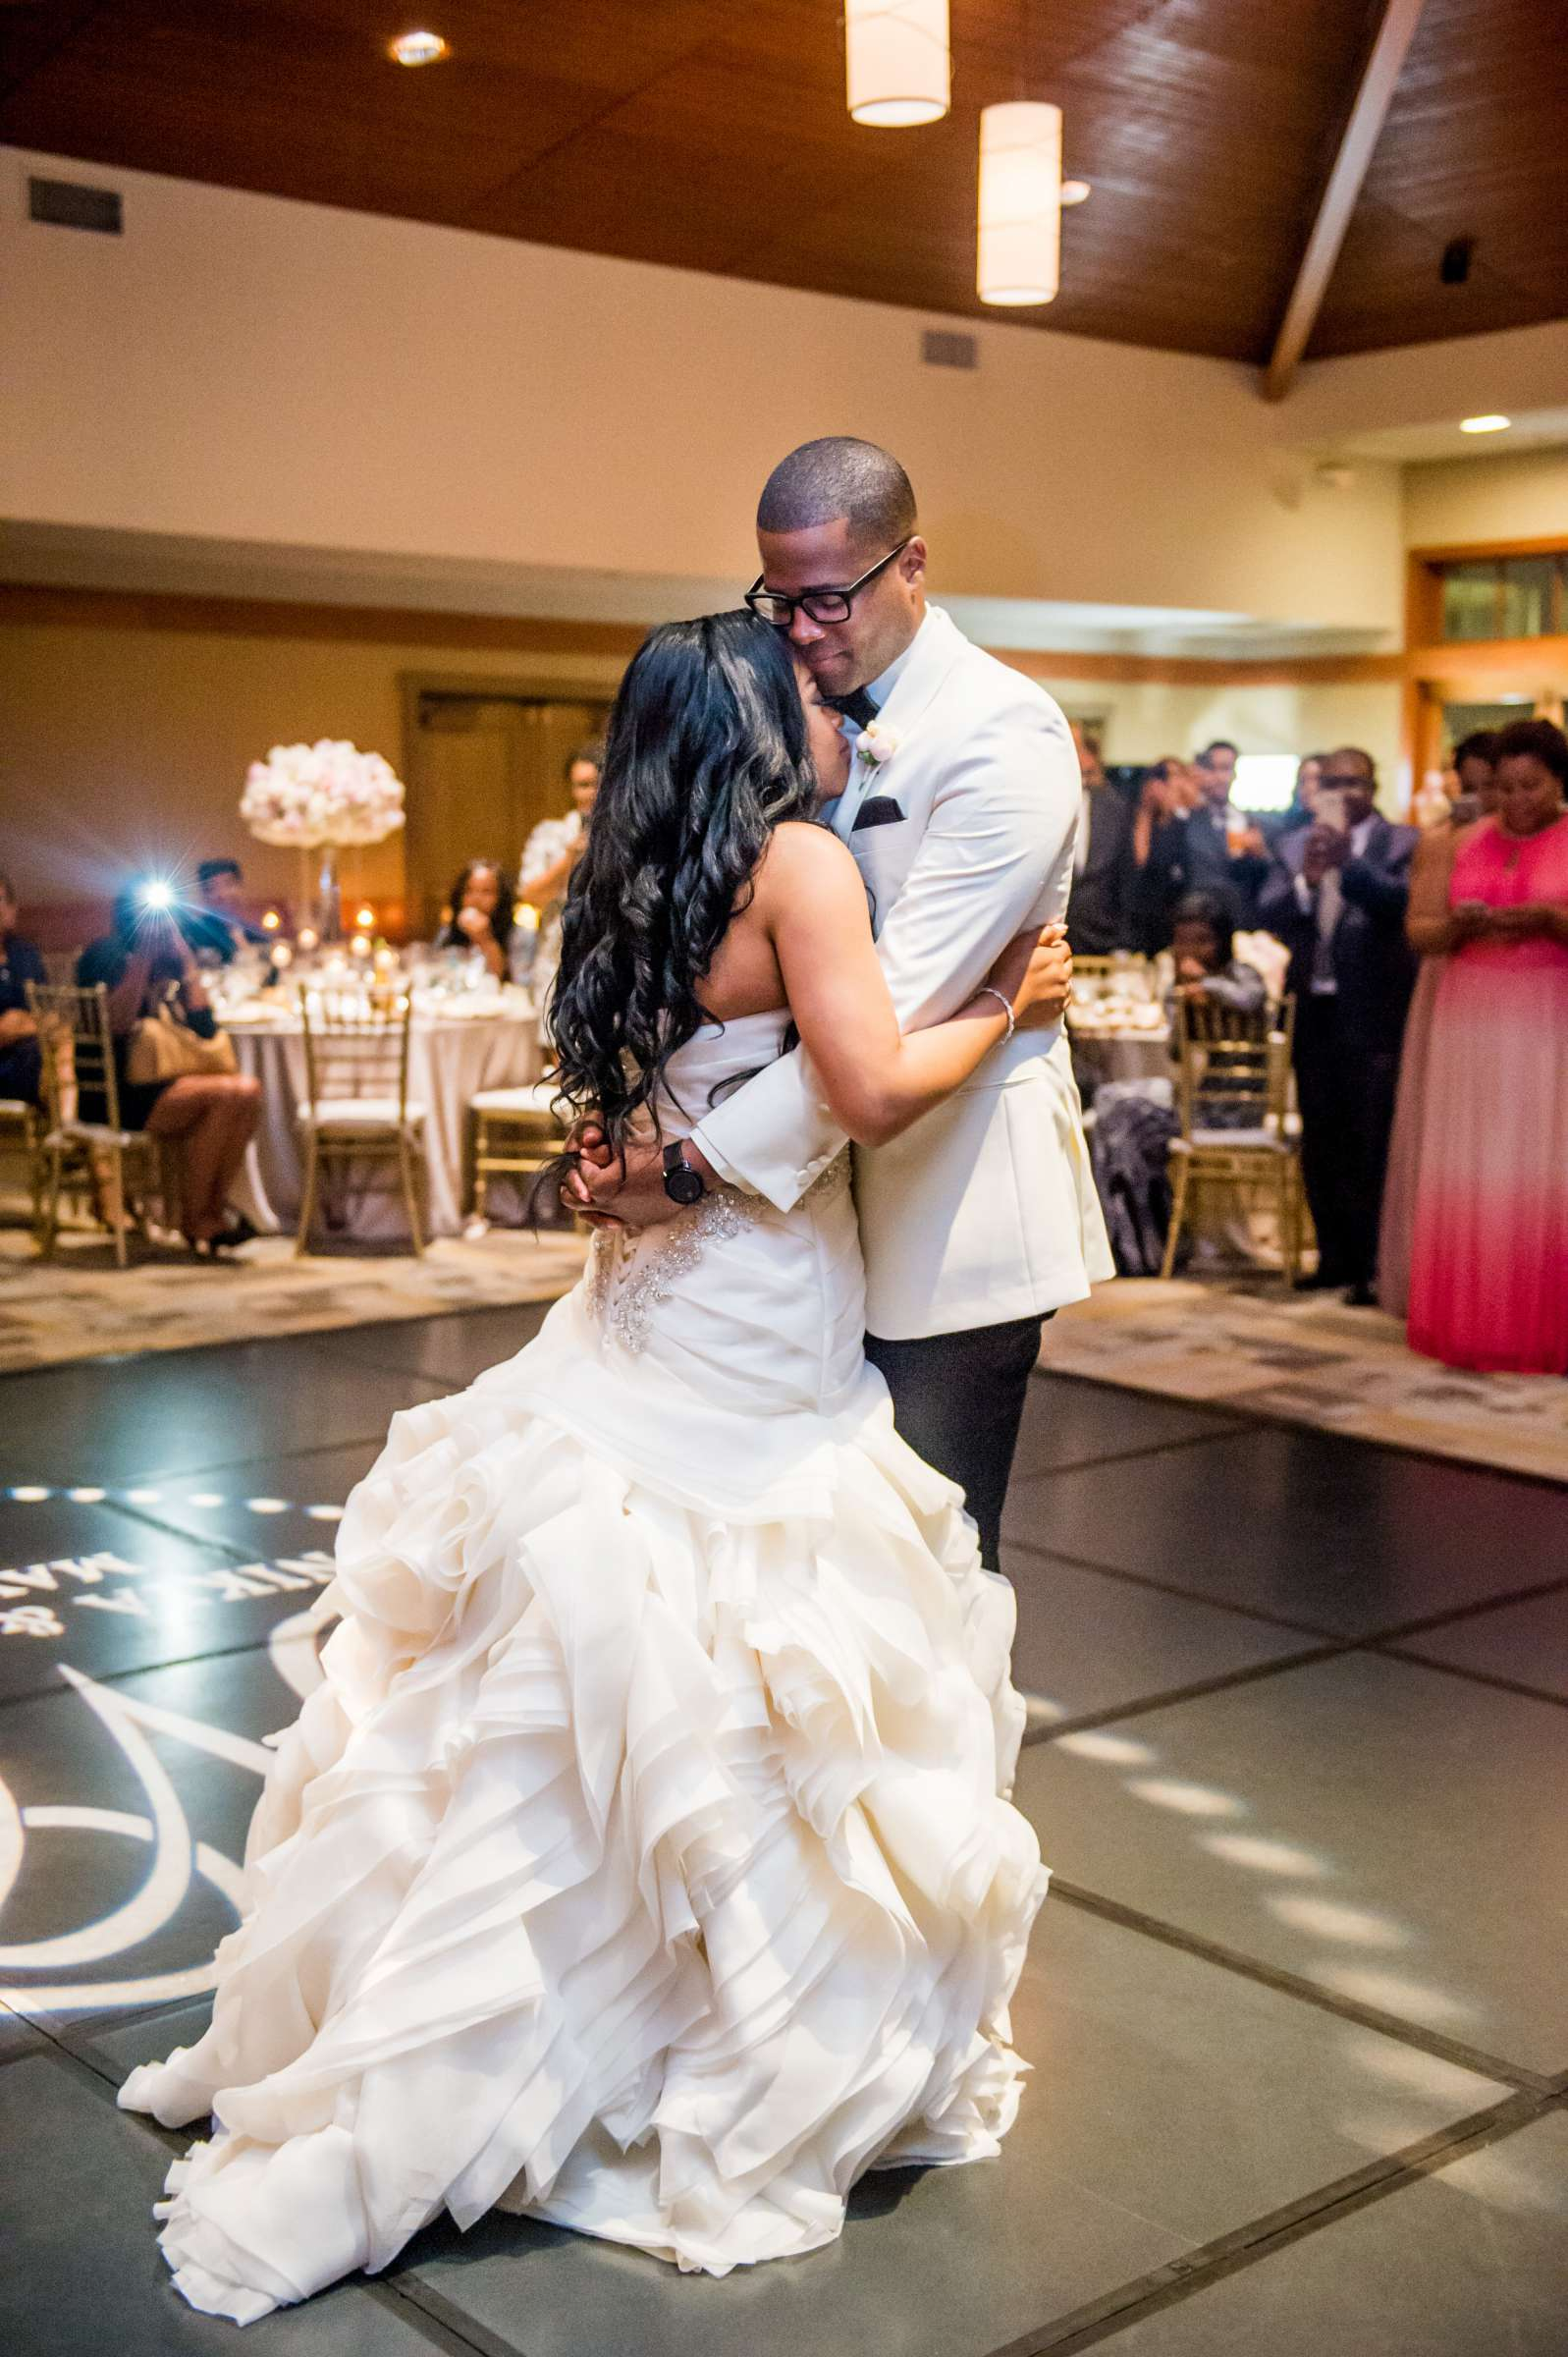 Coronado Community Center Wedding coordinated by First Comes Love Weddings & Events, Nikia and Charles Wedding Photo #71 by True Photography